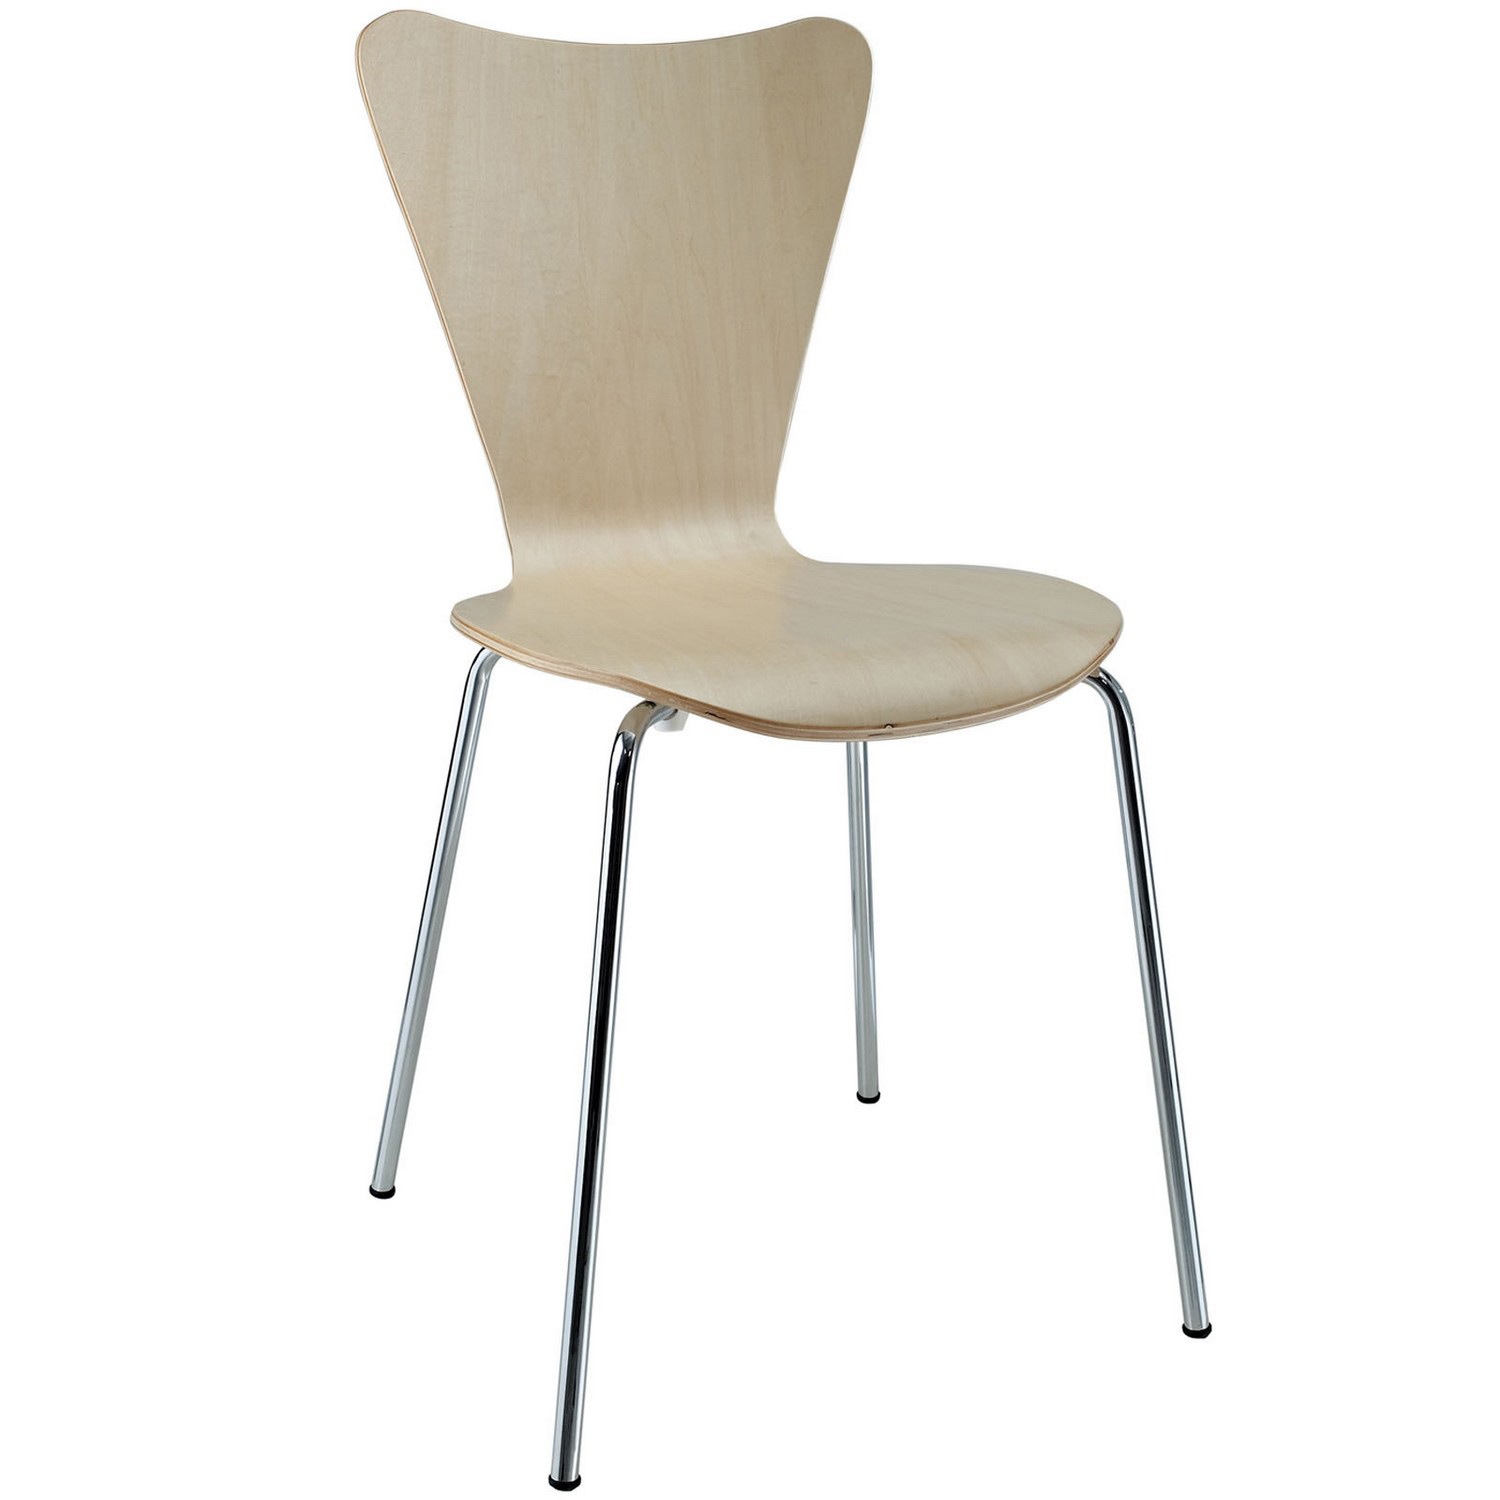 Modway Ernie Dining Side Chair - Natural